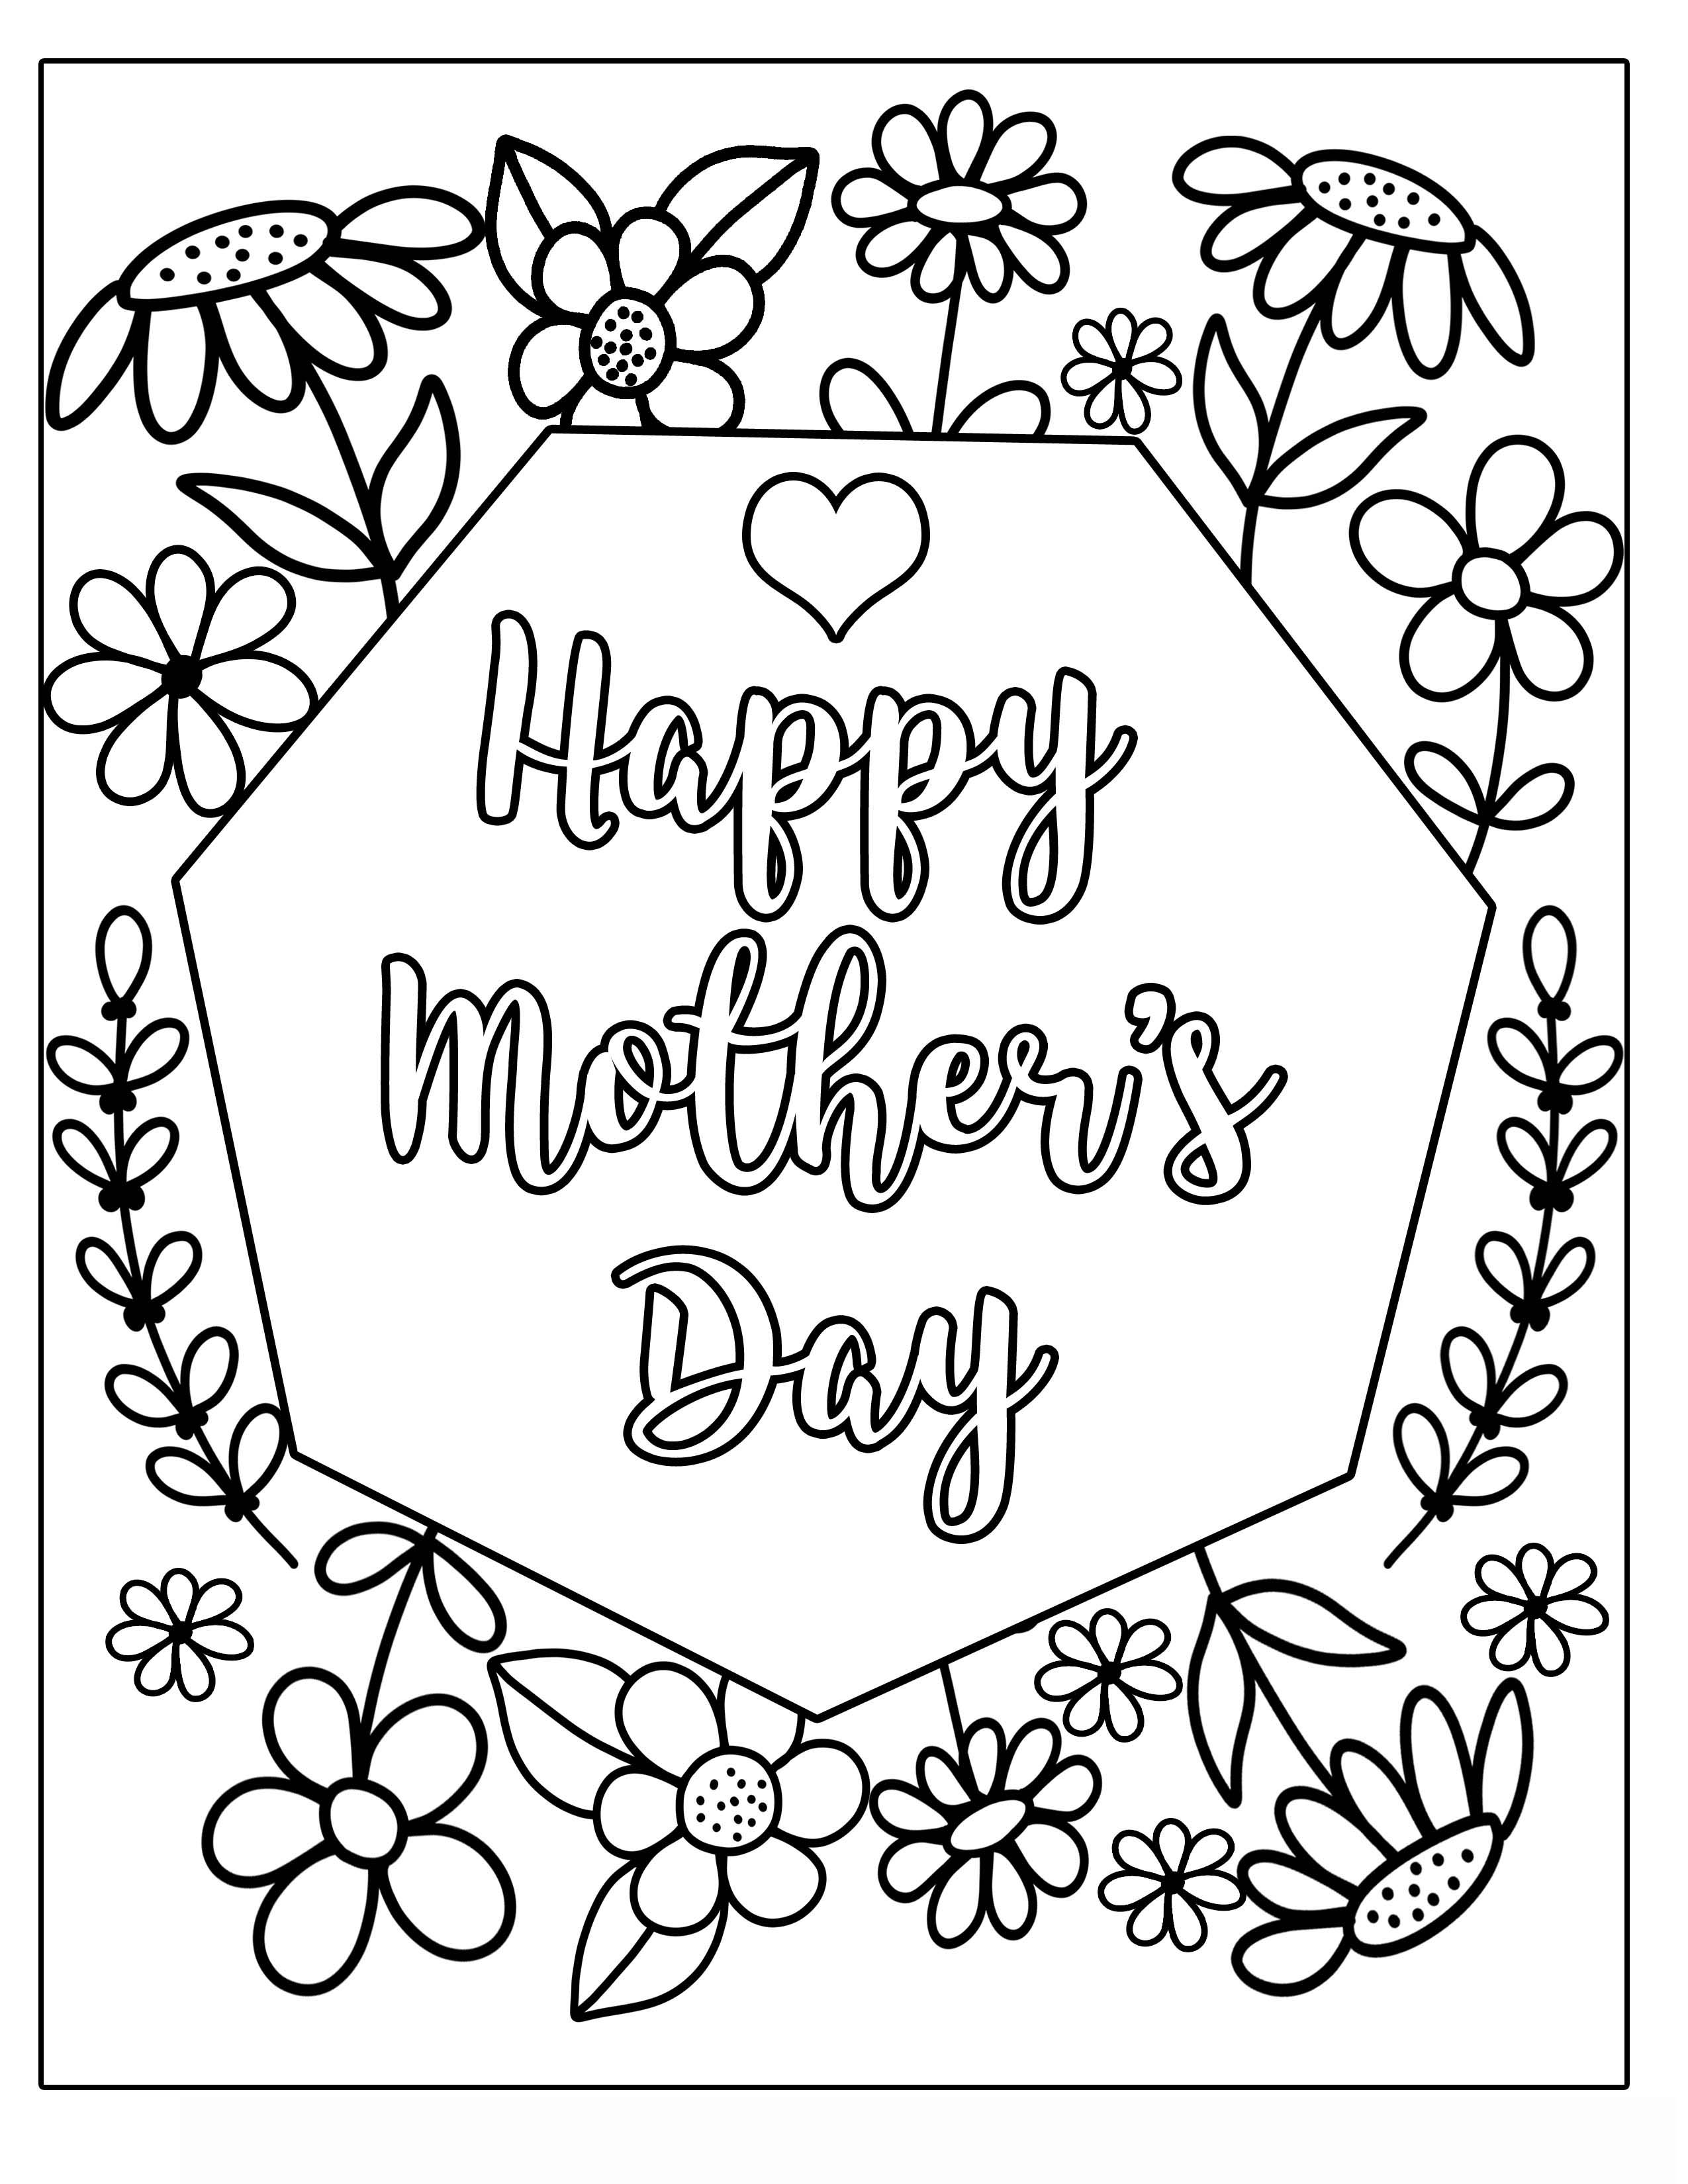 Happy MOTHERS DAY MOTHER'S DAY flower with vines and frills Clipart Coloring Pages for Kids Adults Art Activities Line Art